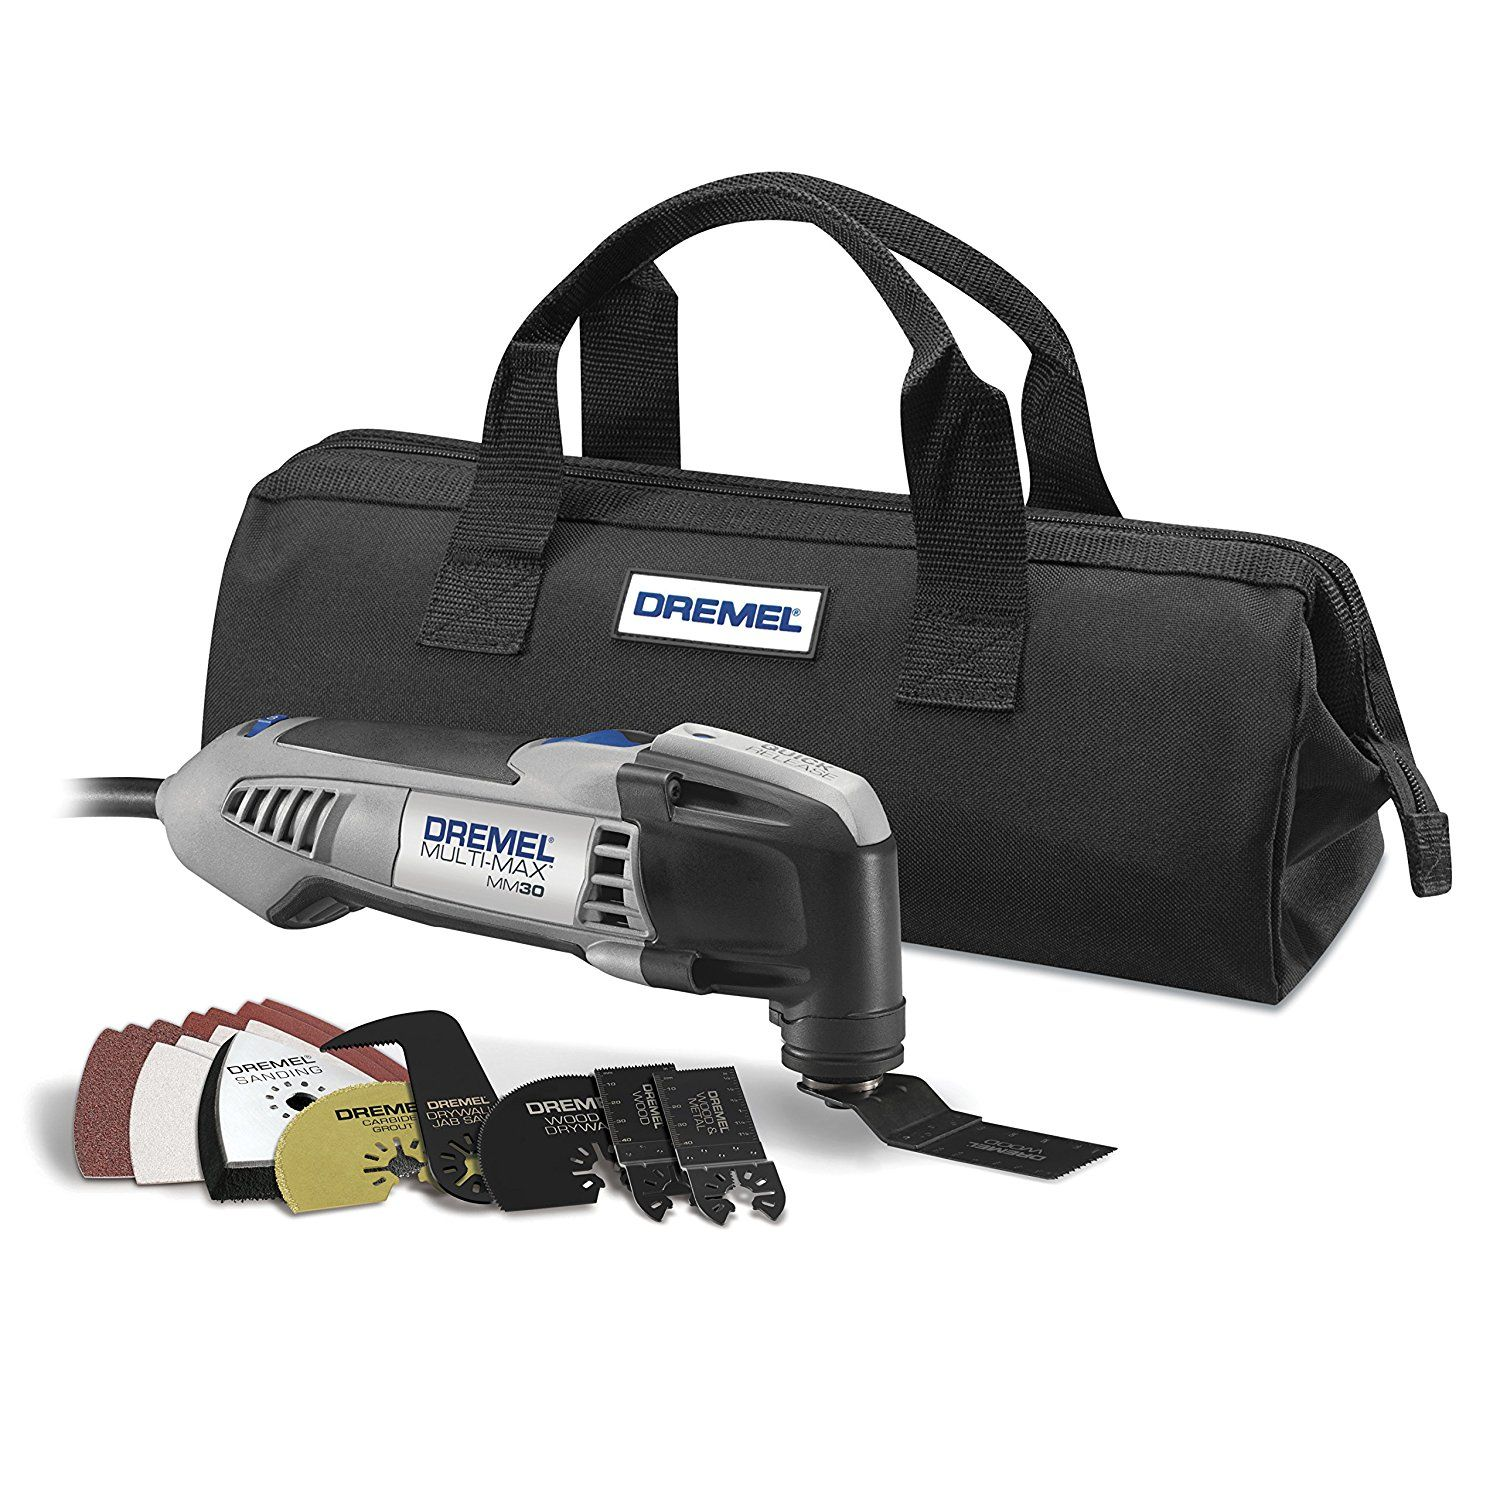 Dremel Mm30 04 Multi Max 3 3 Amp Oscillating Tool Kit With Integrated Quick Release Wrench And 11 Accessories Amazon Com Dremel Oscillating Tool Portable Band Saw